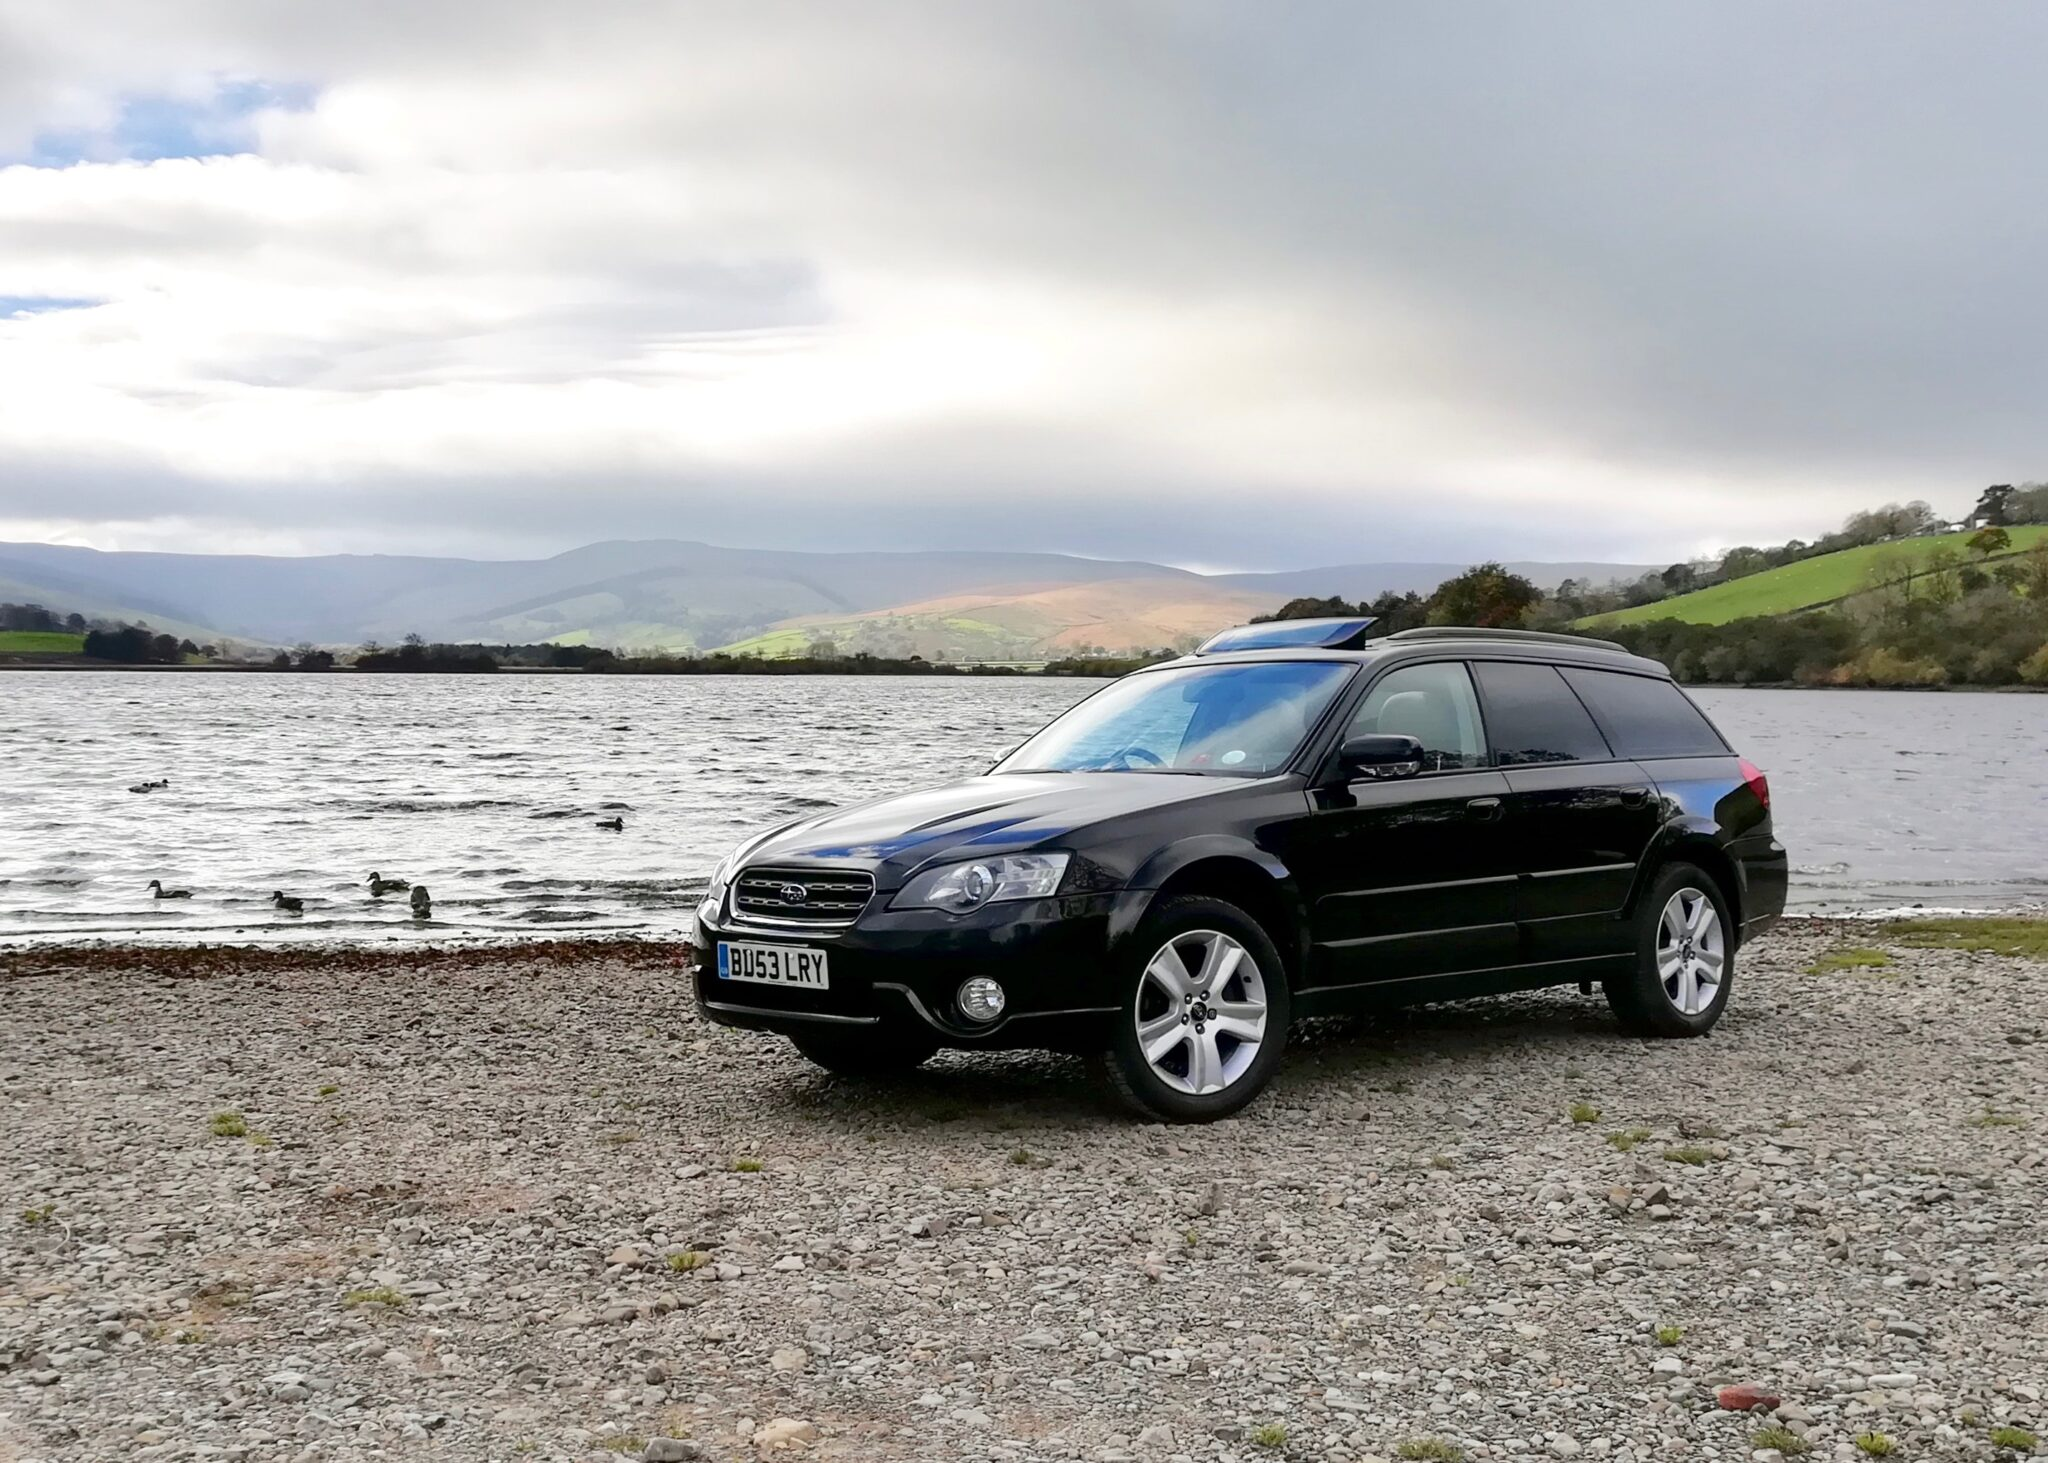 Subaru, Outback, Subaru Outback, Subaru Outback 3.0R, all wheel drive, estate, wagon, awd, 4x4, not 2 grand, n2g, not2grand, not2grand.co.uk